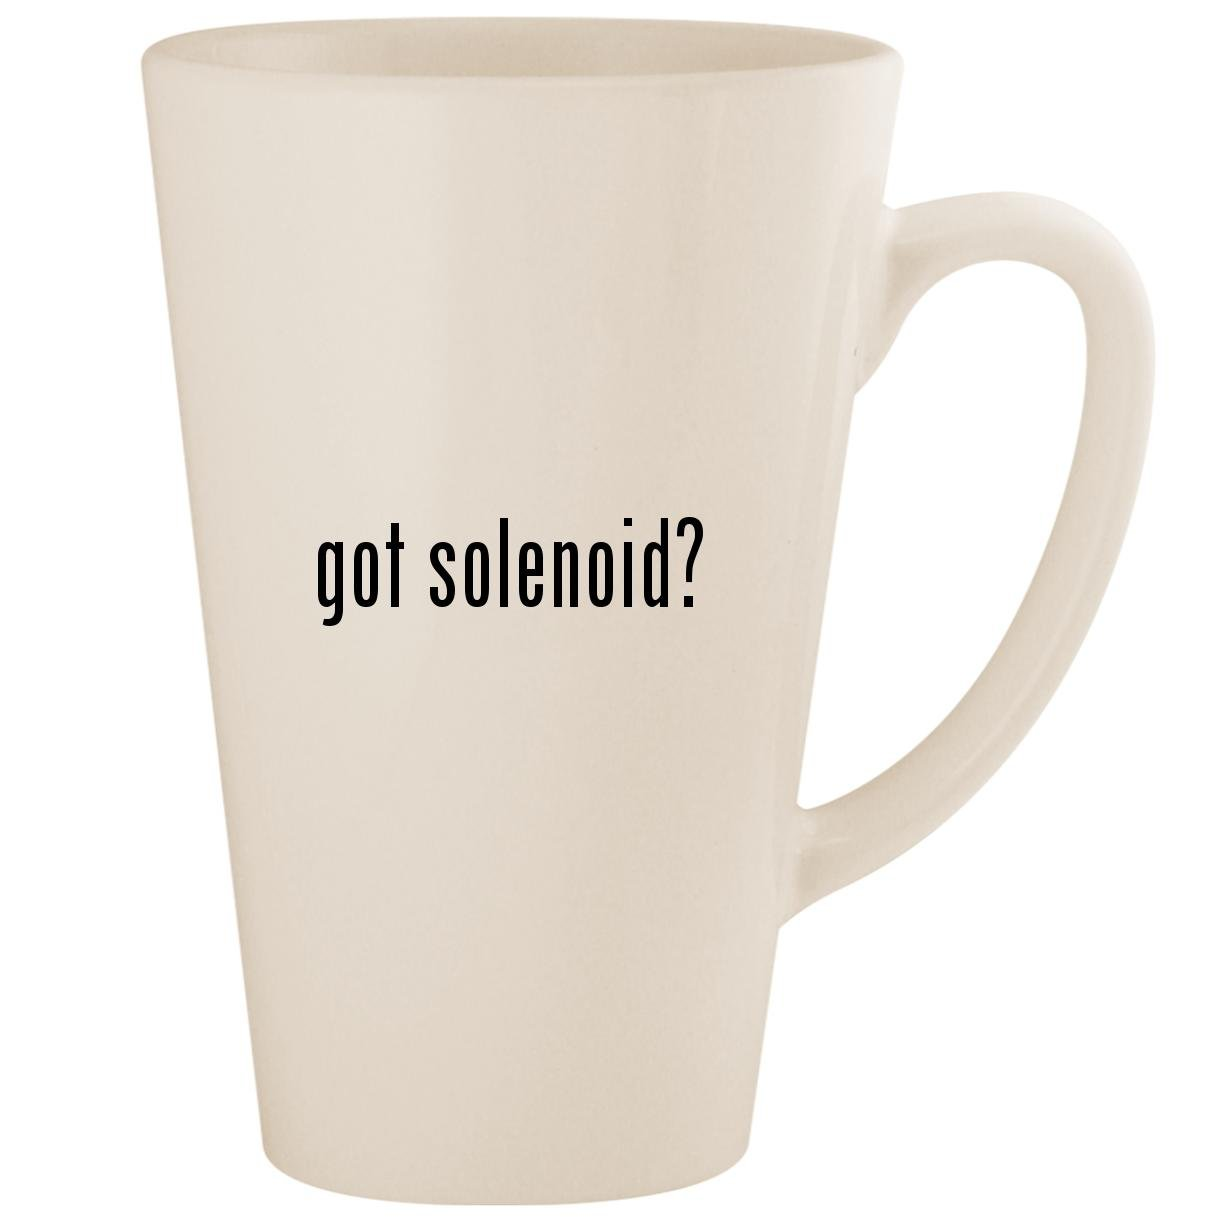 got solenoid? - White 17oz Ceramic Latte Mug Cup